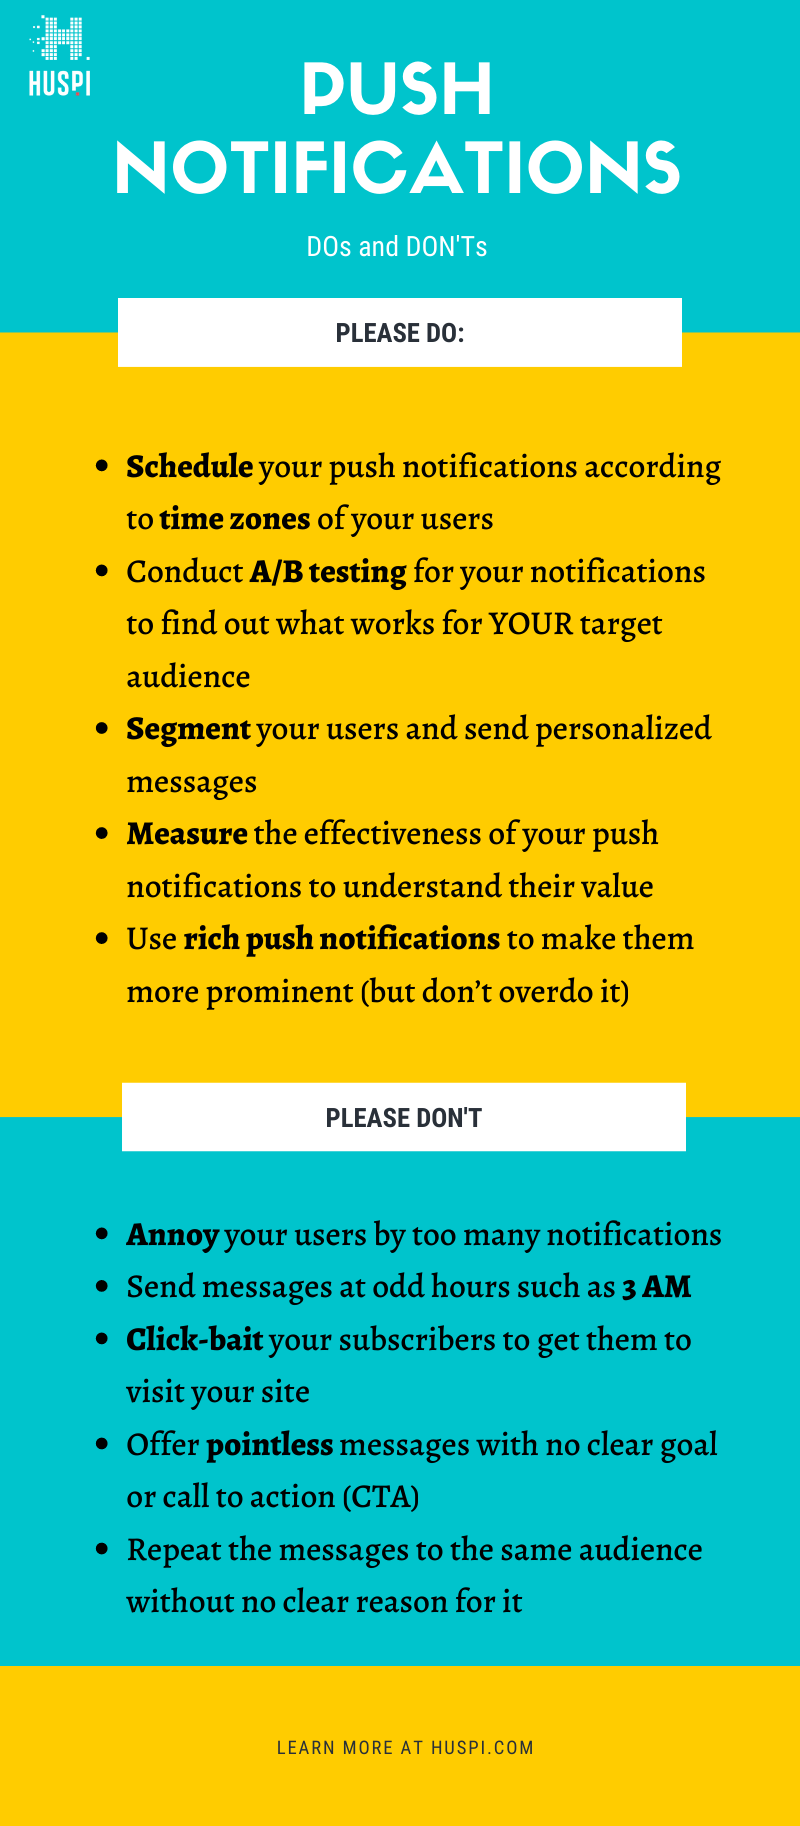 push notifications best practices dos and donts